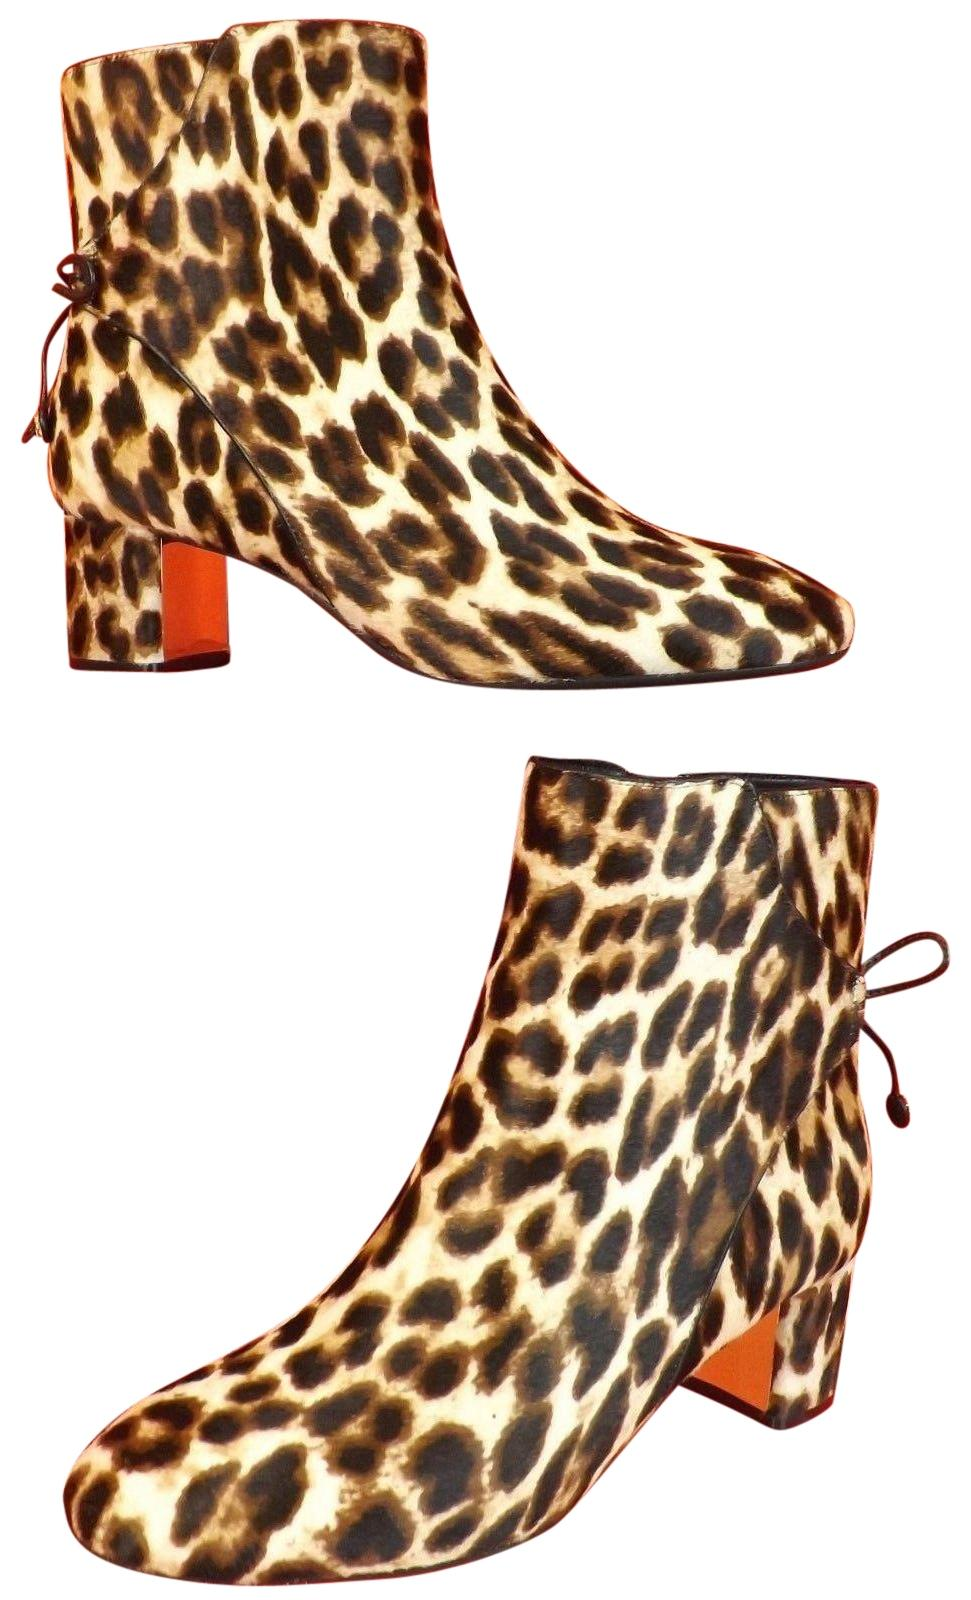 Tory Burch Multi-color Laila 50 Leopard Print Pony Hair Bow Gold Reva Zip Ankle Boots/Booties Size US 11 Regular (M, B)